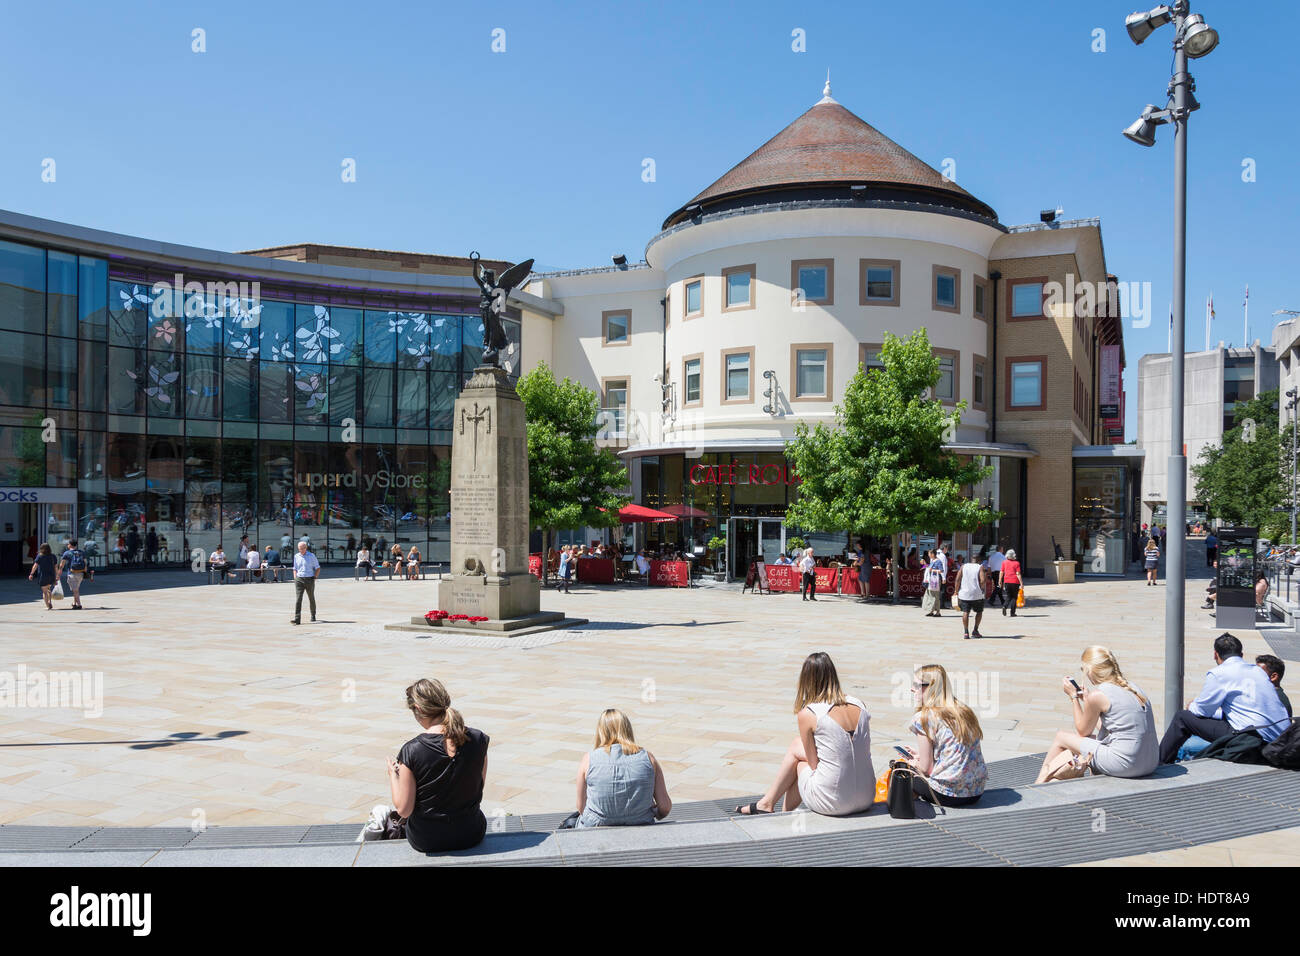 Woking Town Square showing War Memorial and The Peacocks Centre, Woking, Surrey, England, United Kingdom - Stock Image